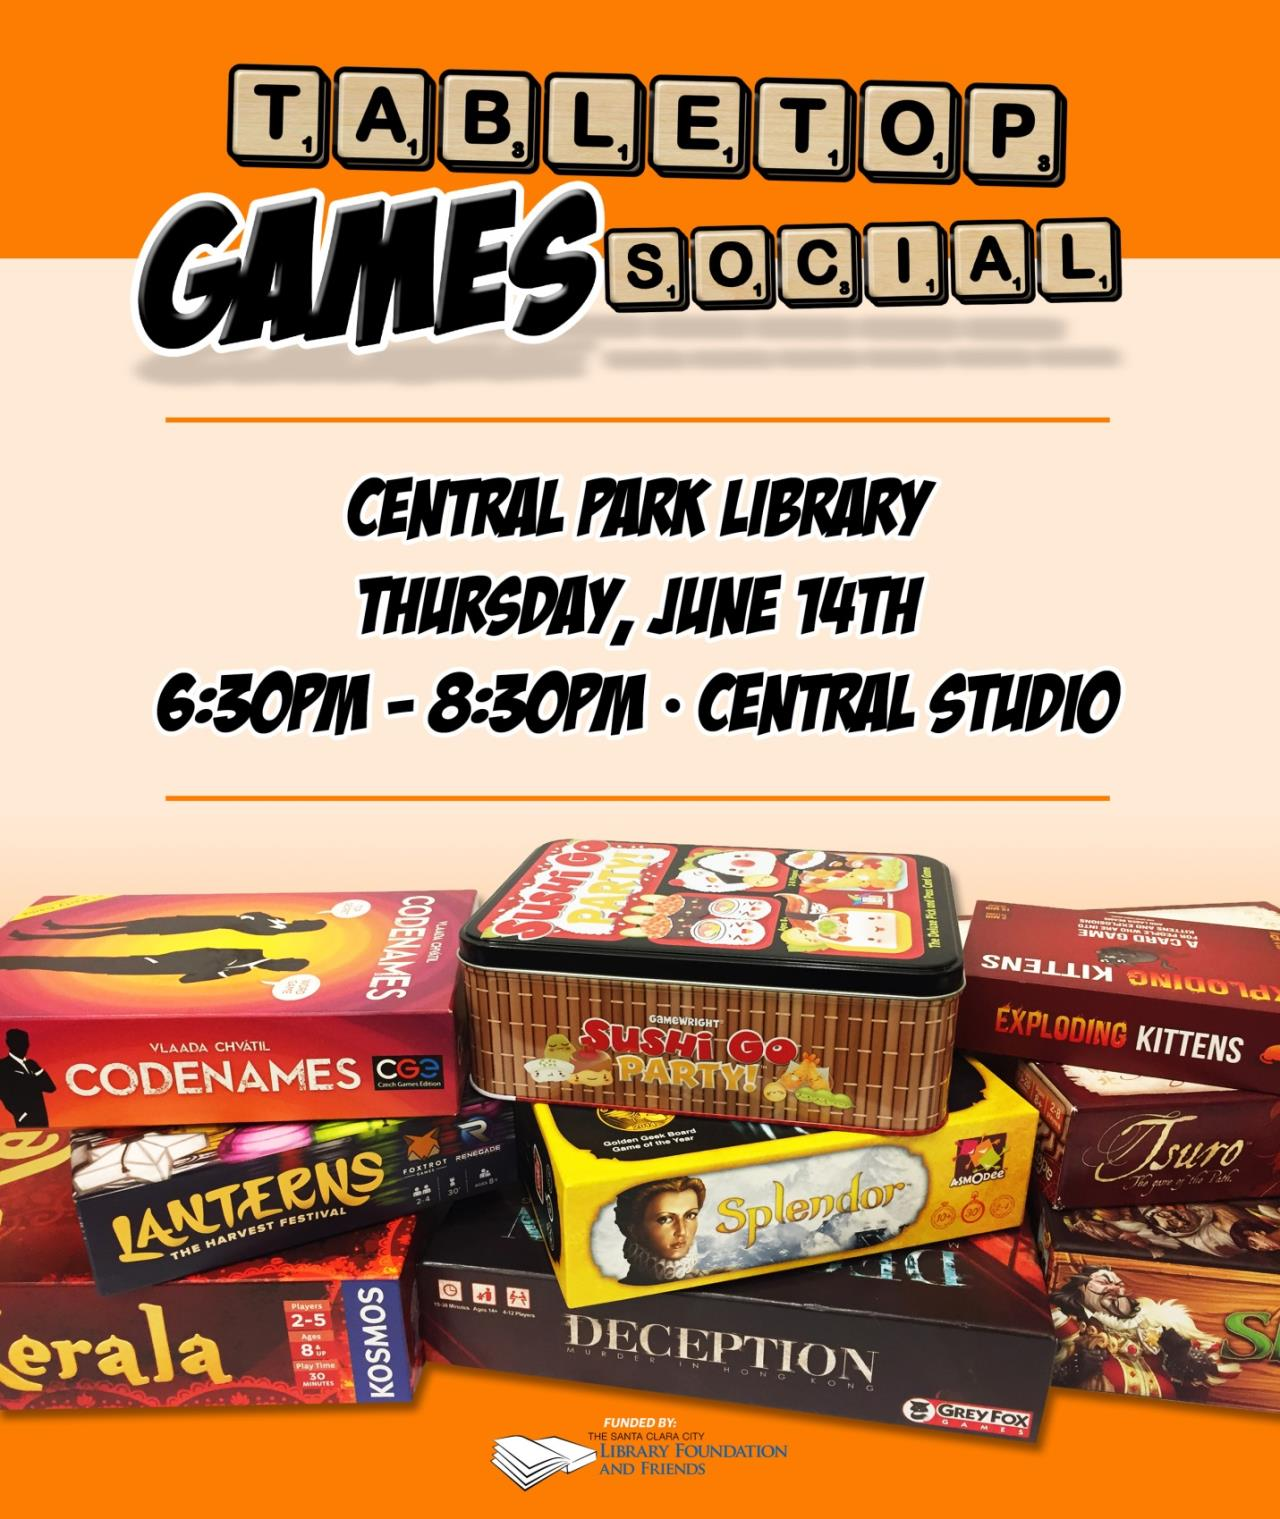 Tabletop games social, central park library, thursday June 14th, 6:30 to 8:30, central studios